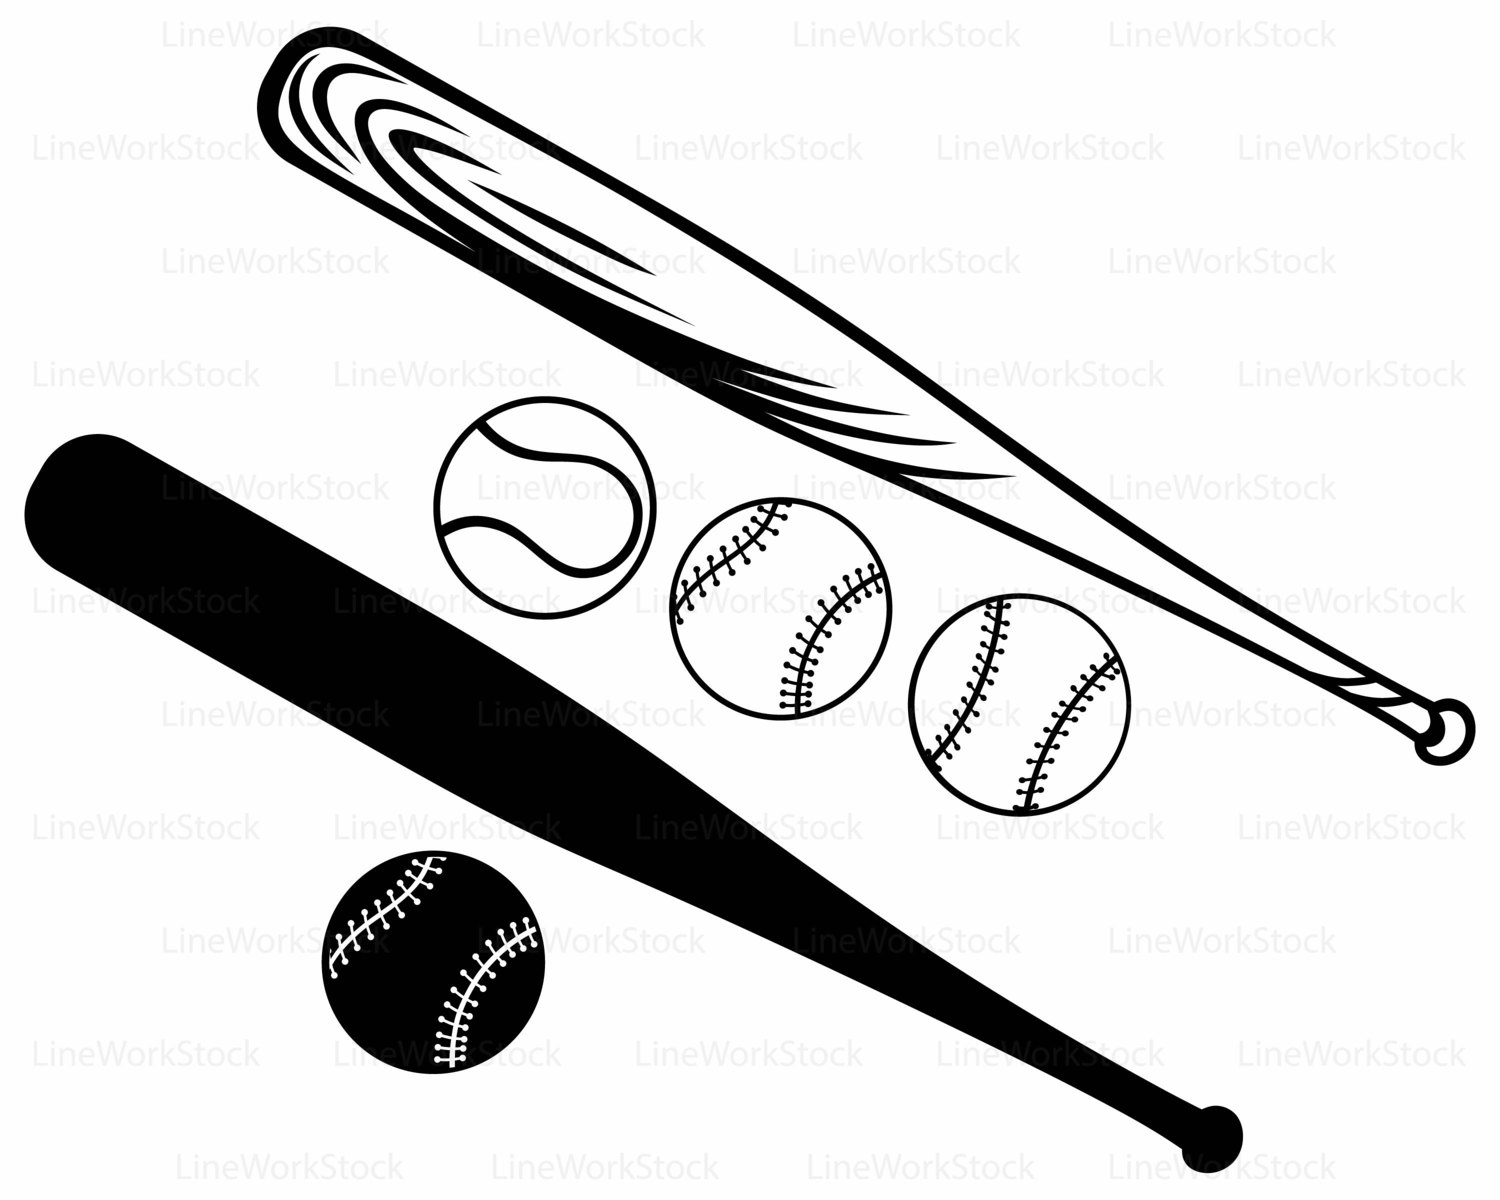 Baseball bat svg. Free download best on